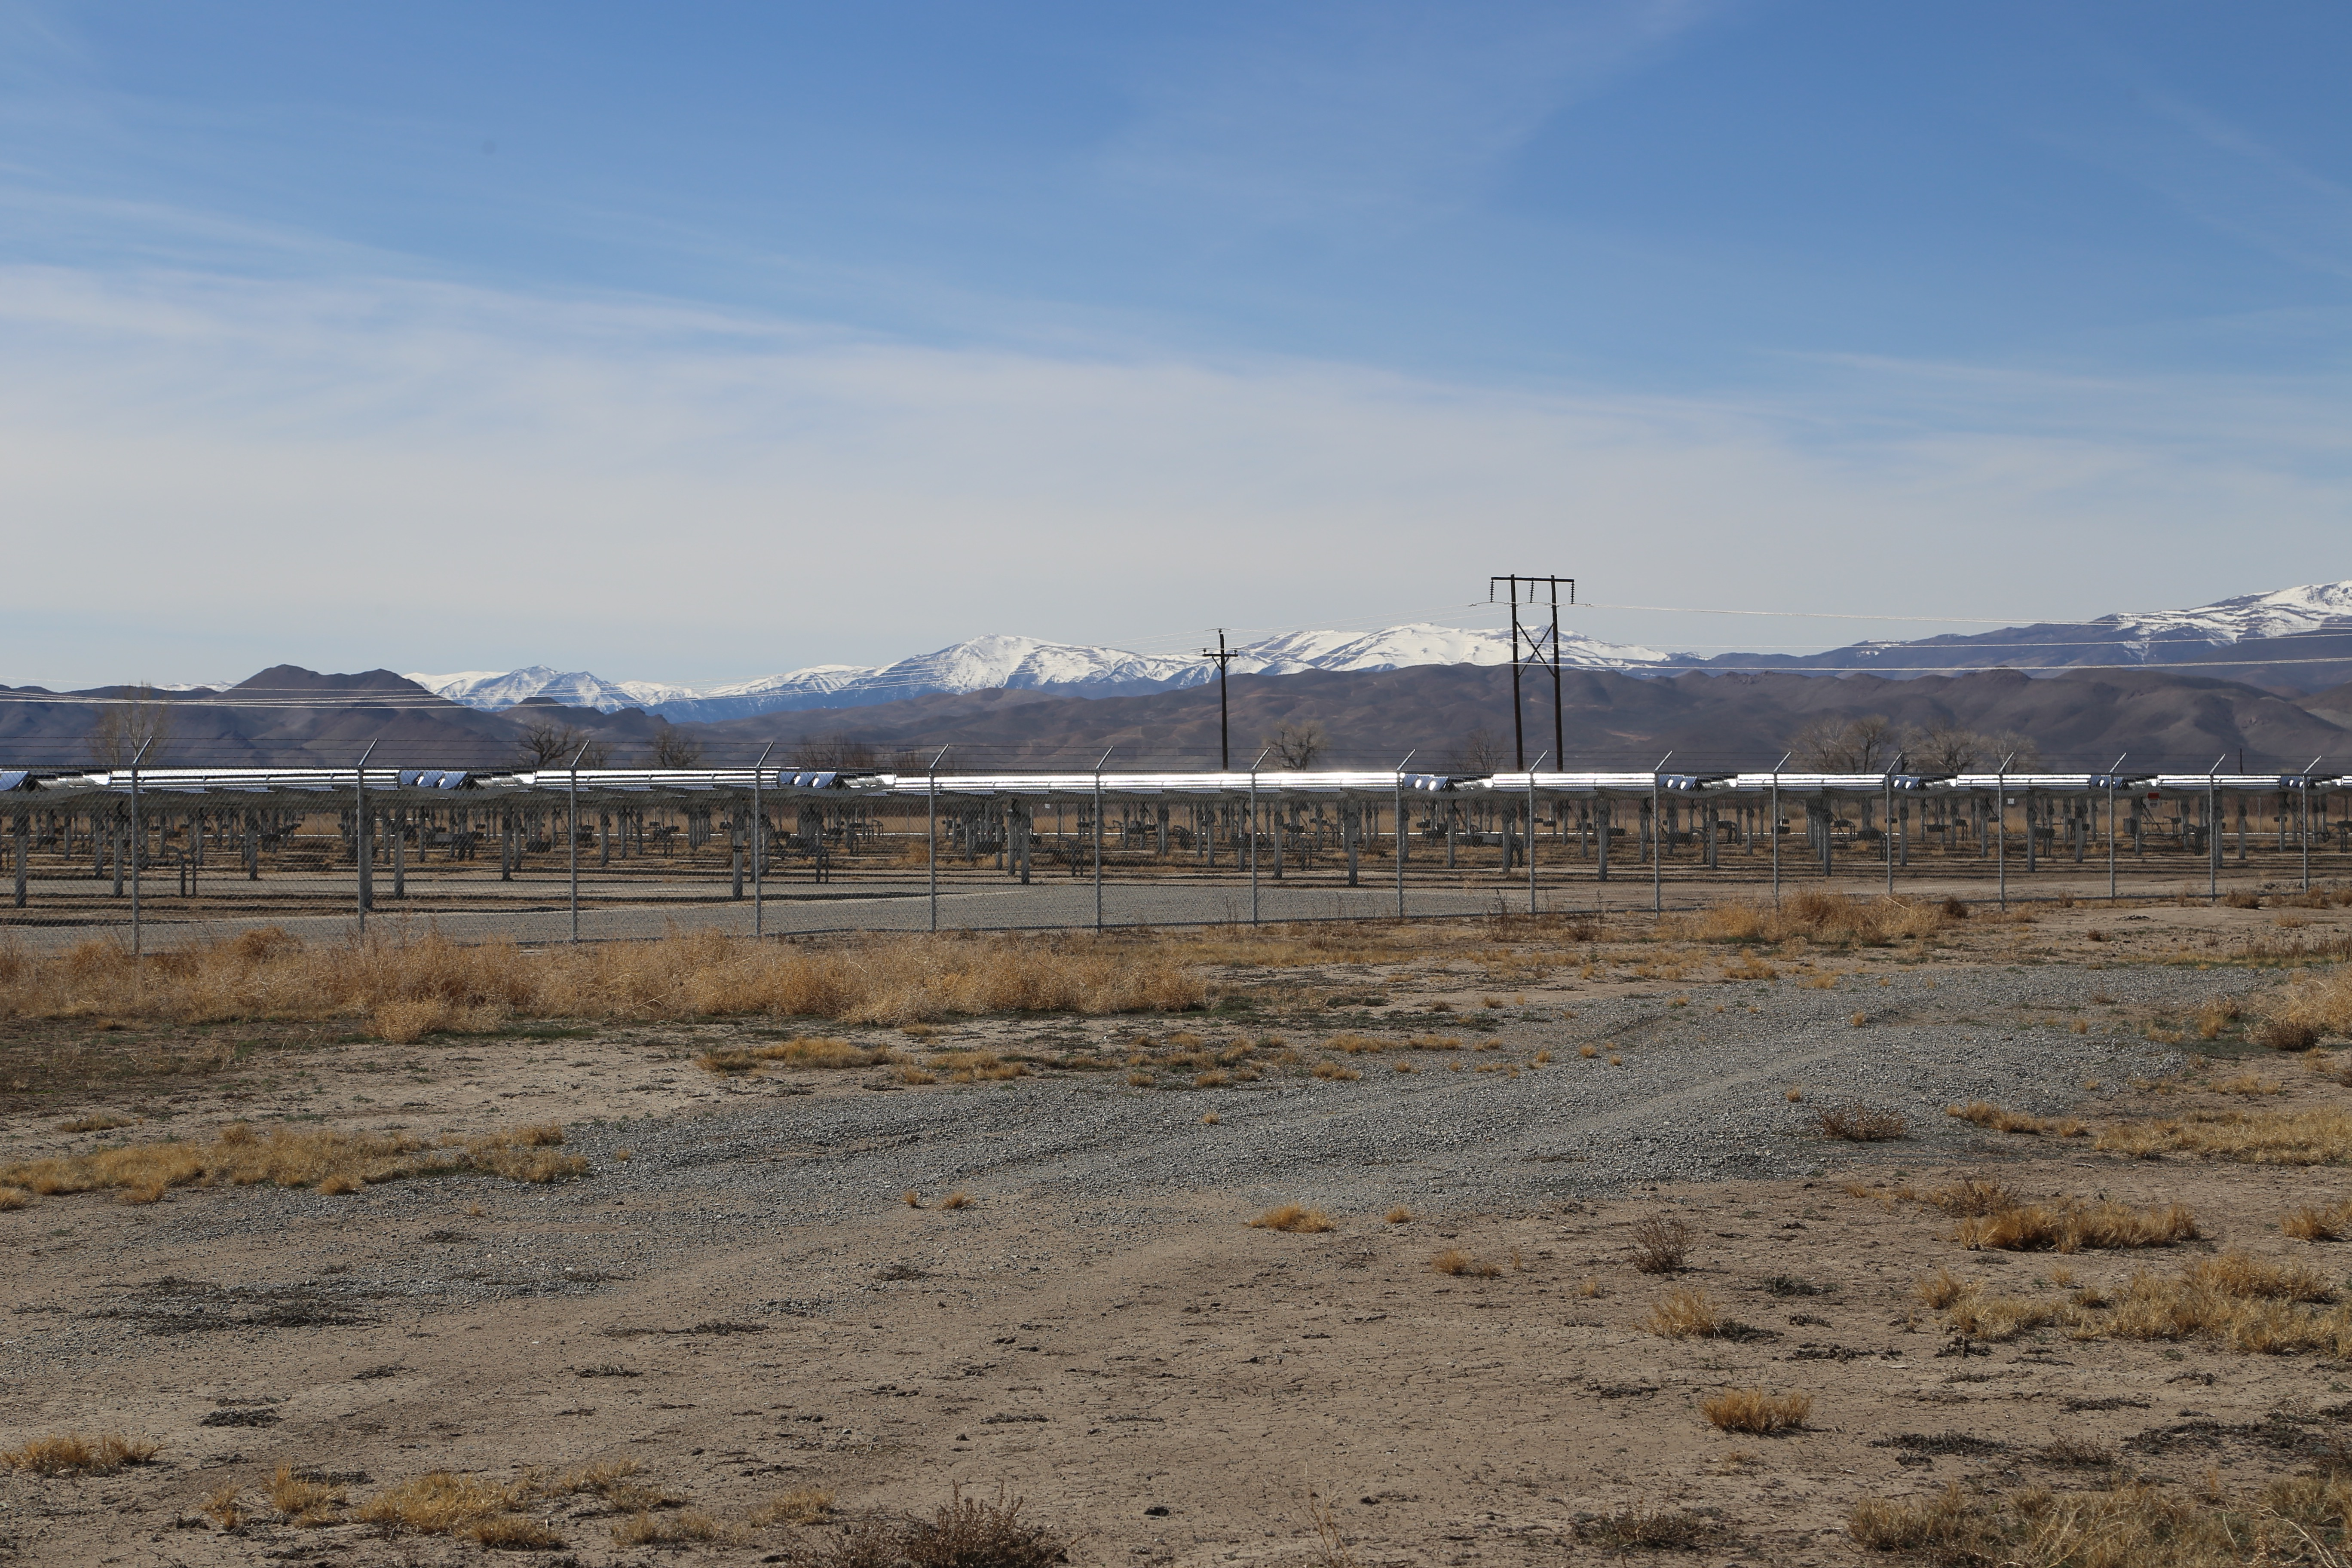 Apple's solar farm in Yerington, Nevada.